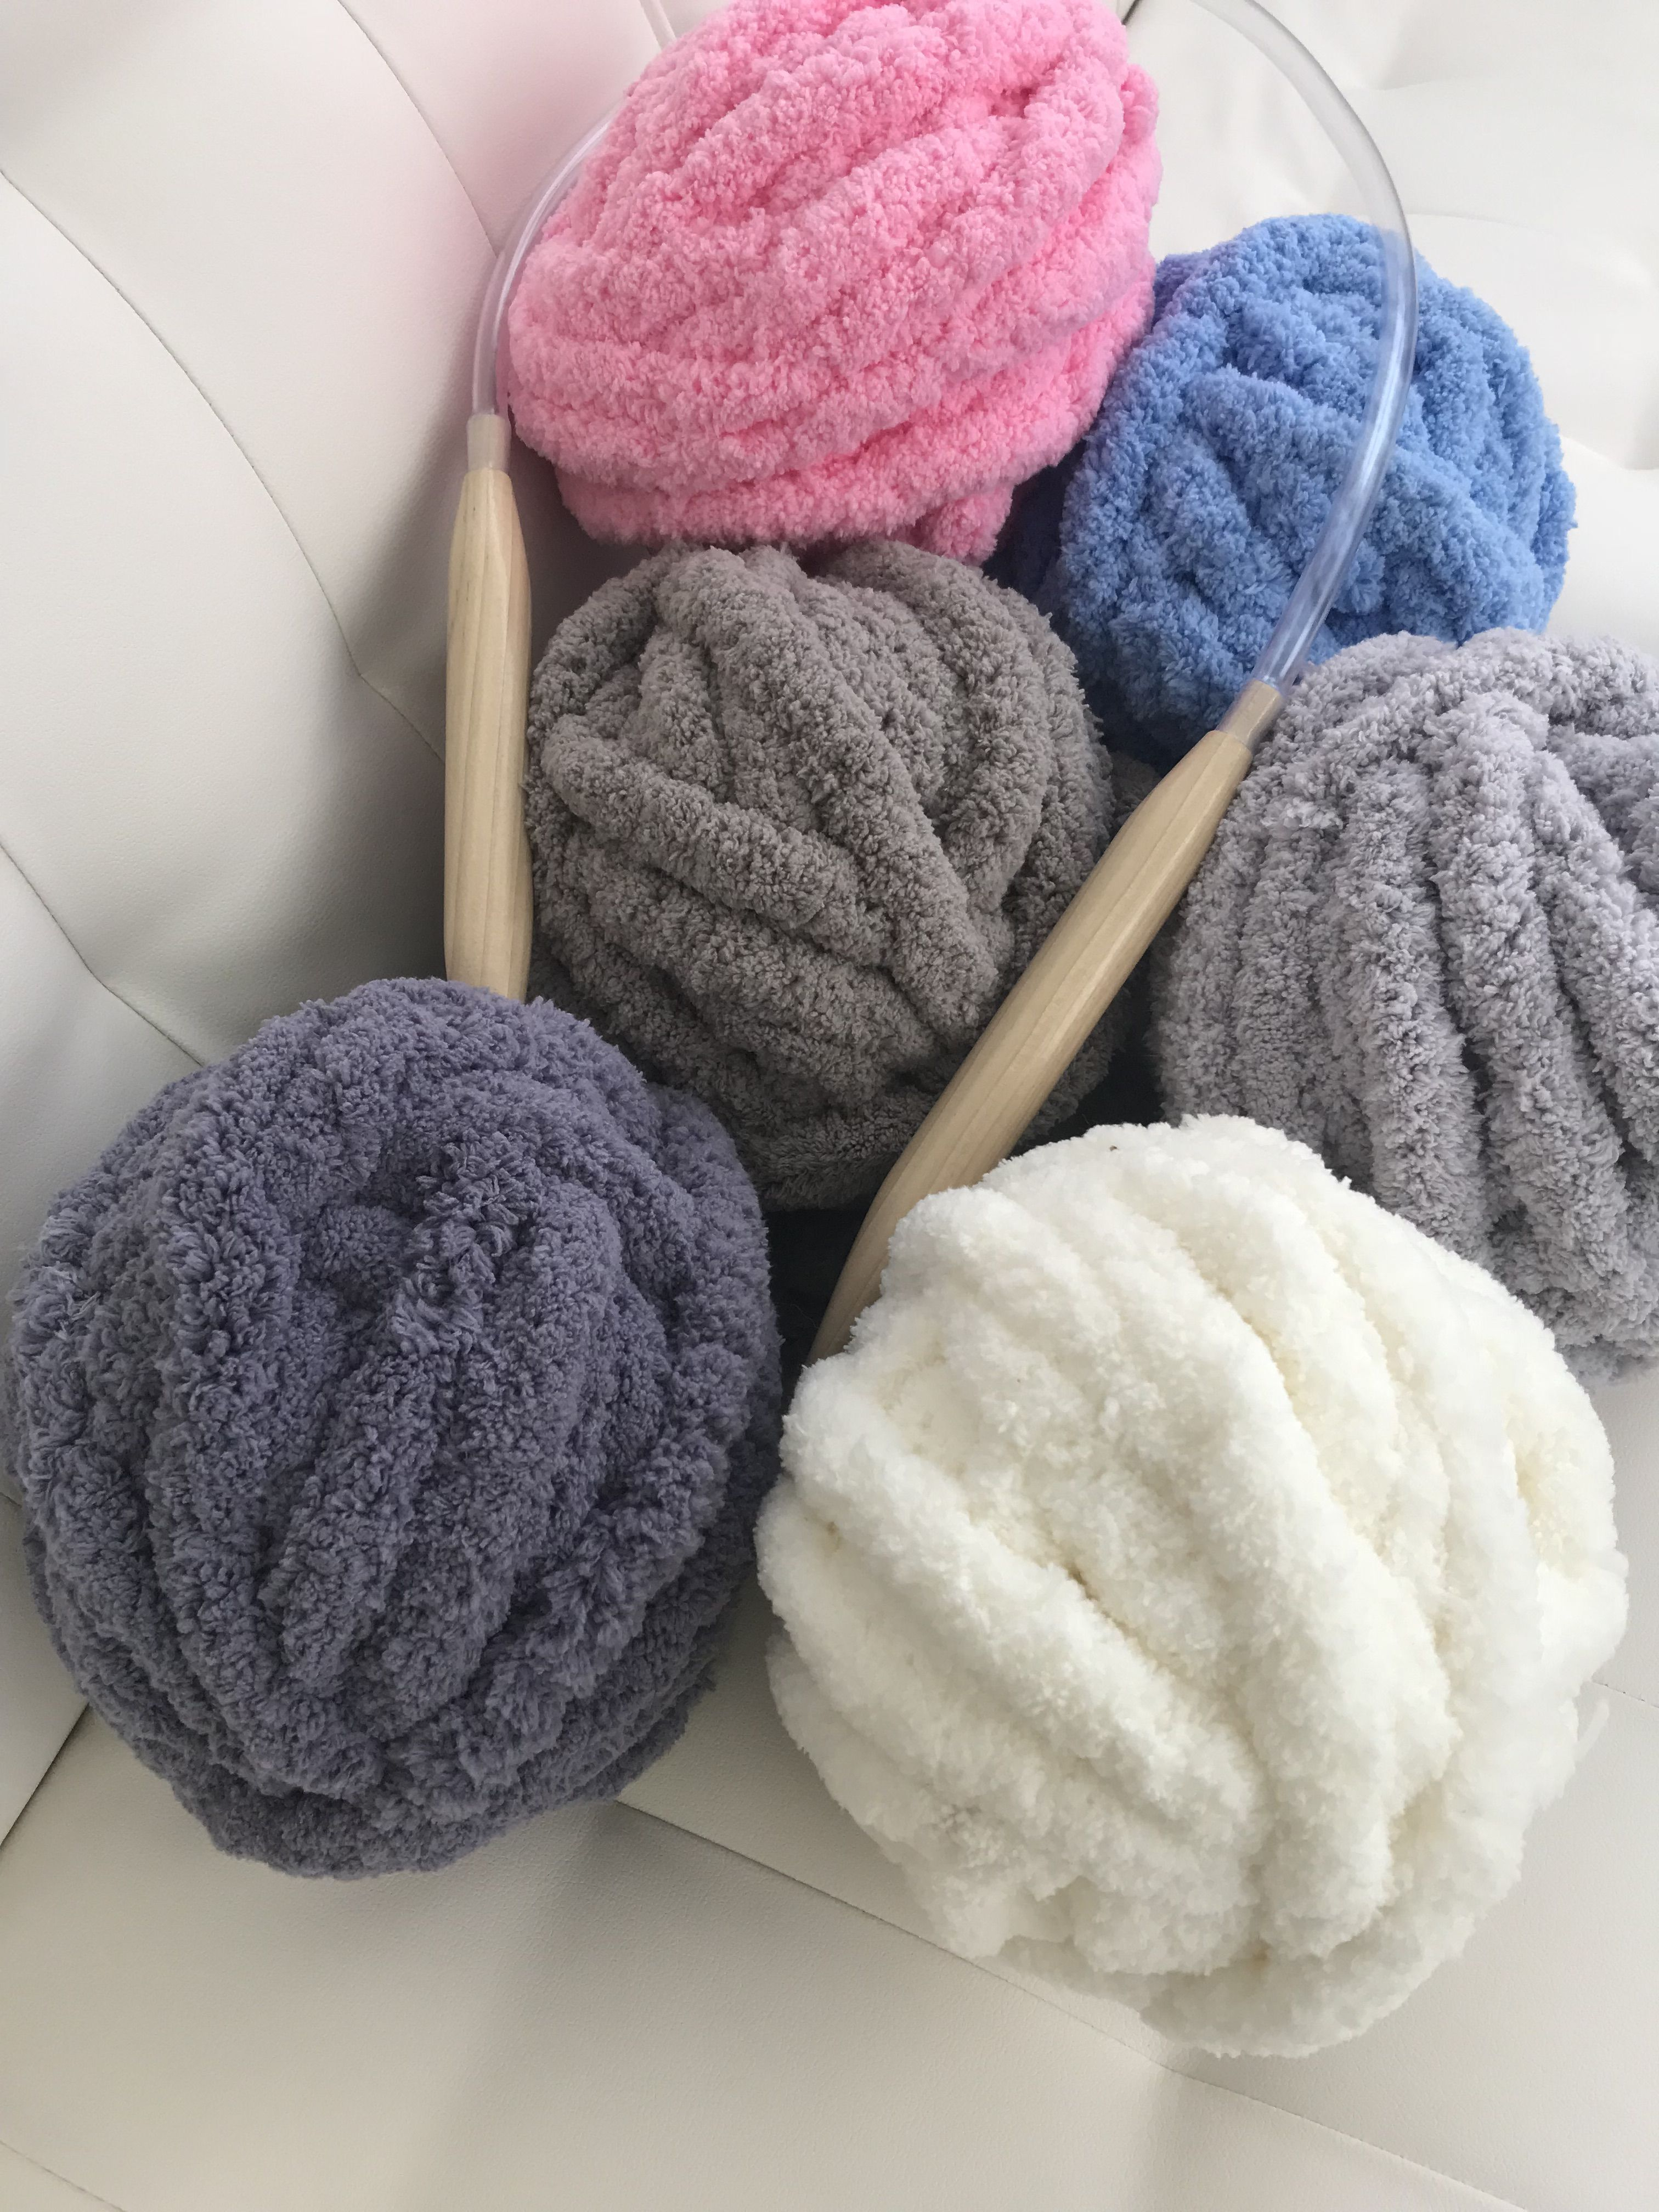 Did you try BeCozi Jumbo chenille yarn yet? It is the softest